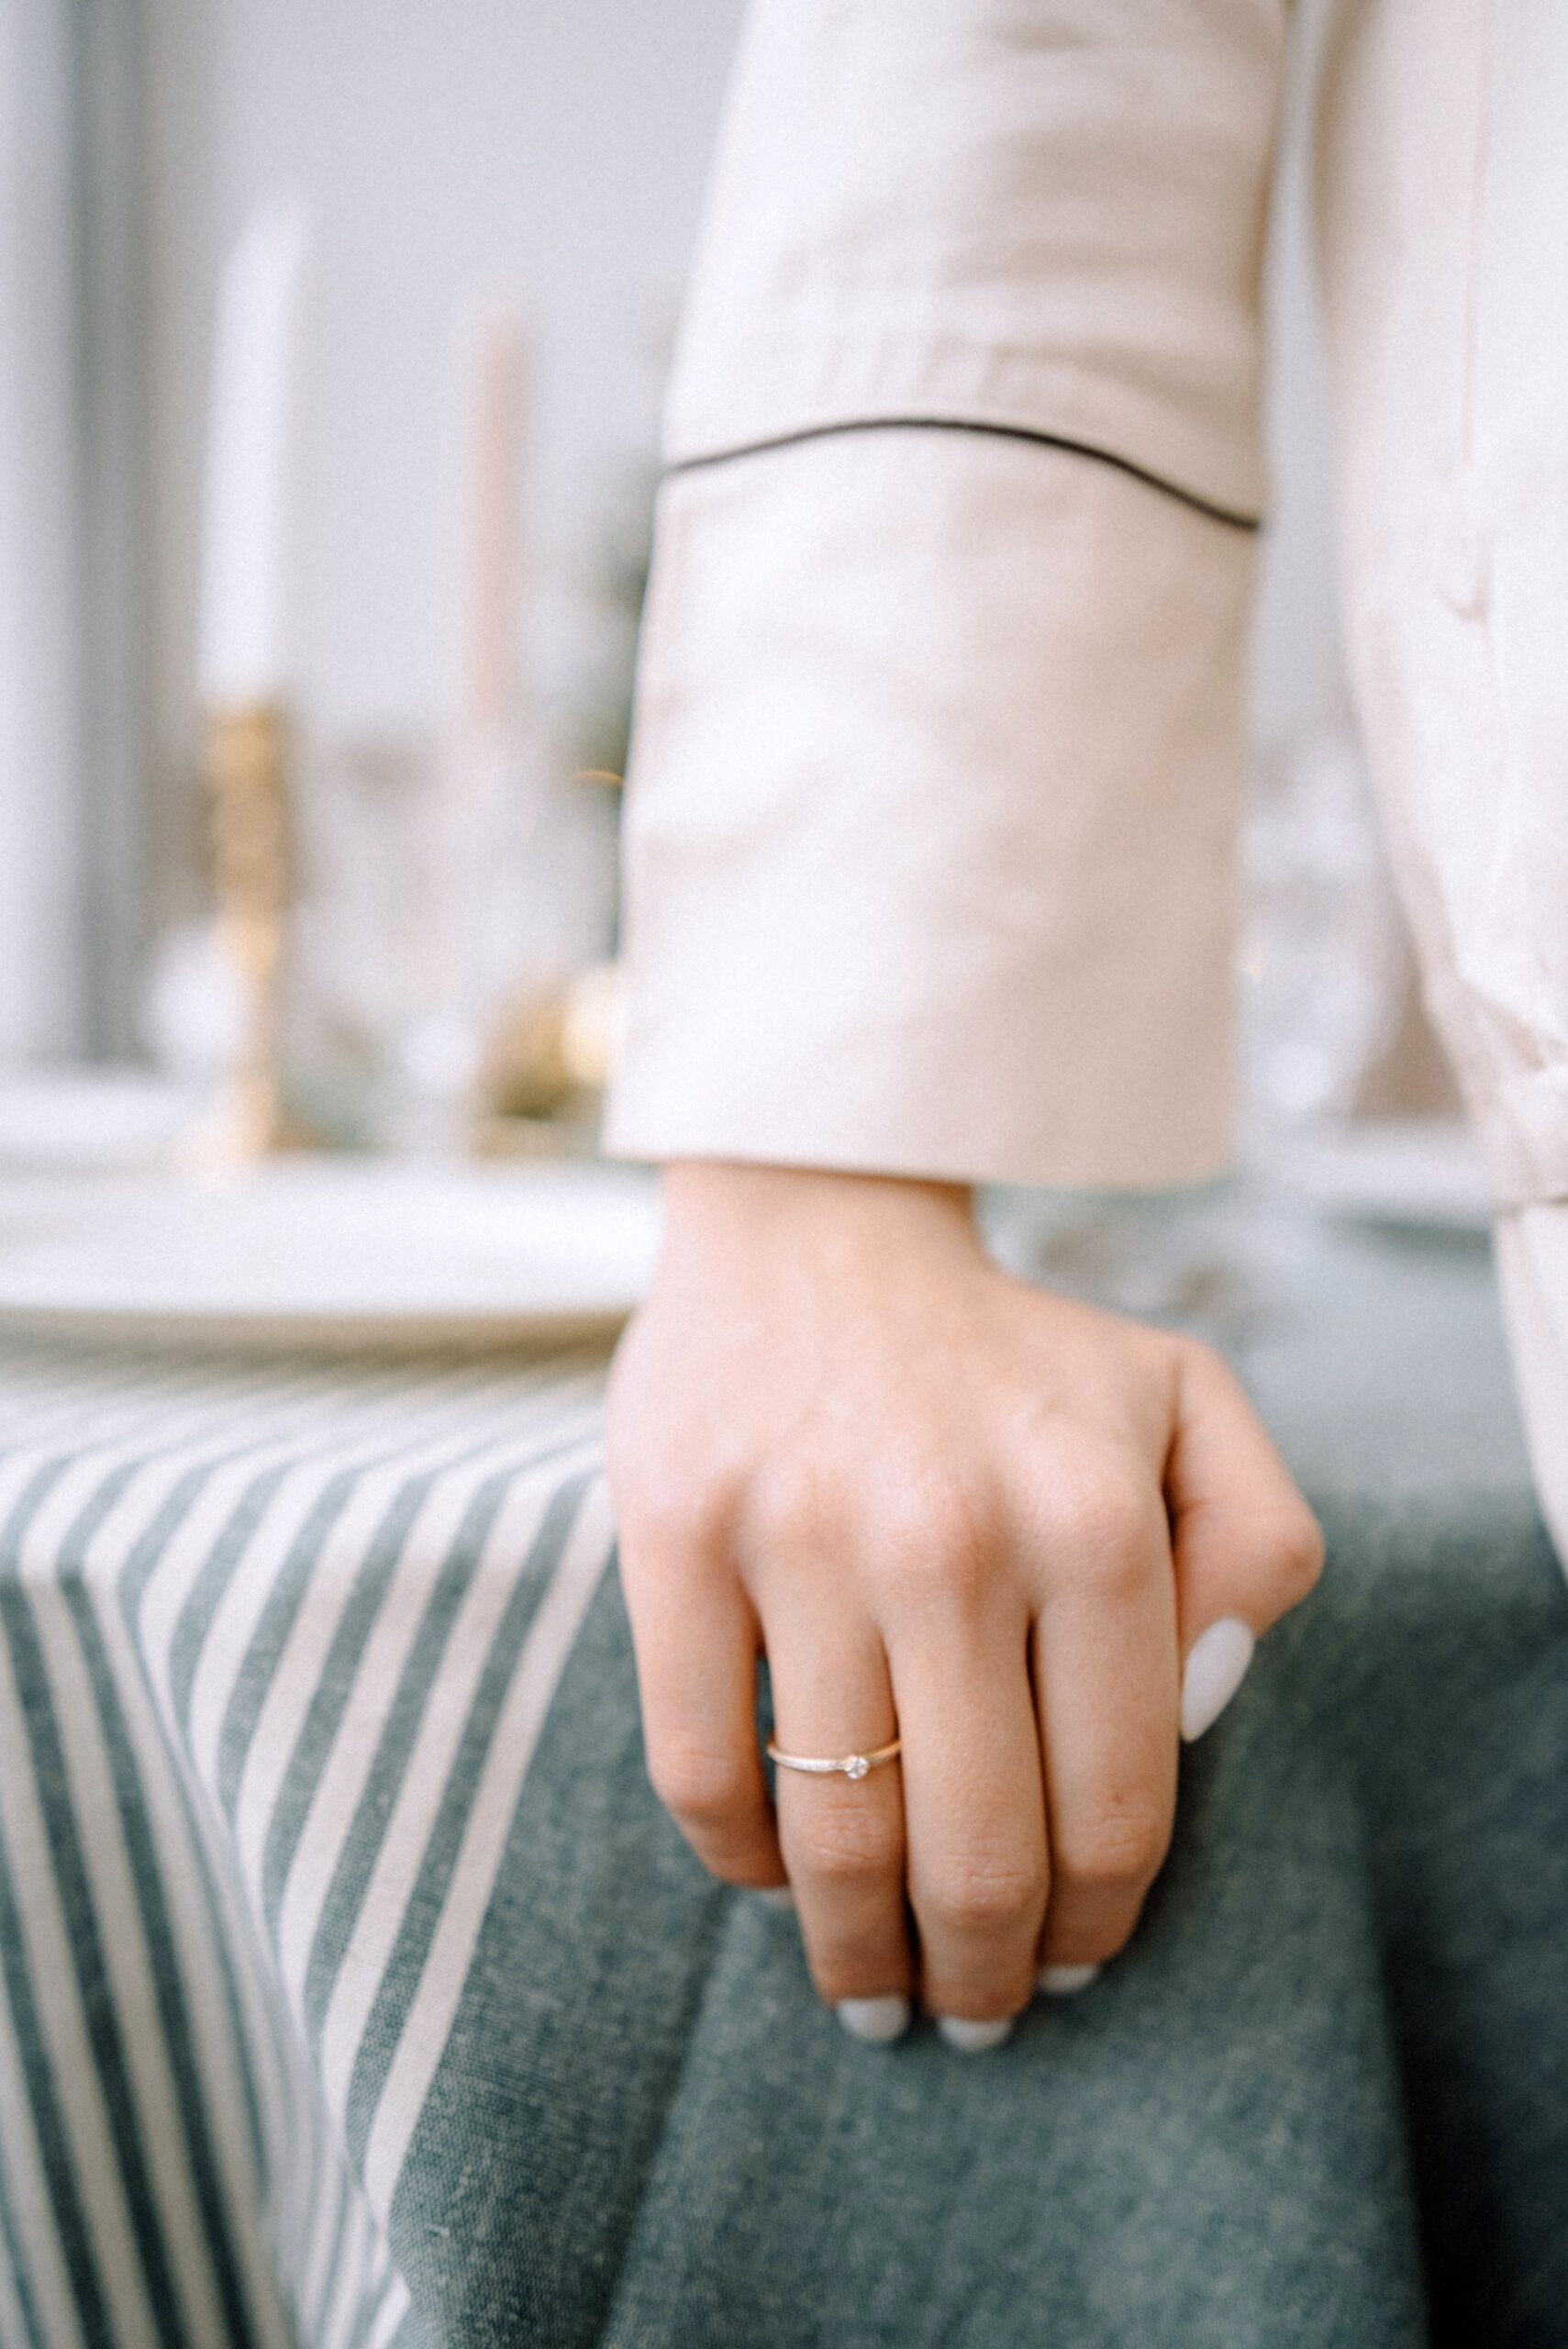 How Do I Take Care Of My Engagement Ring 1